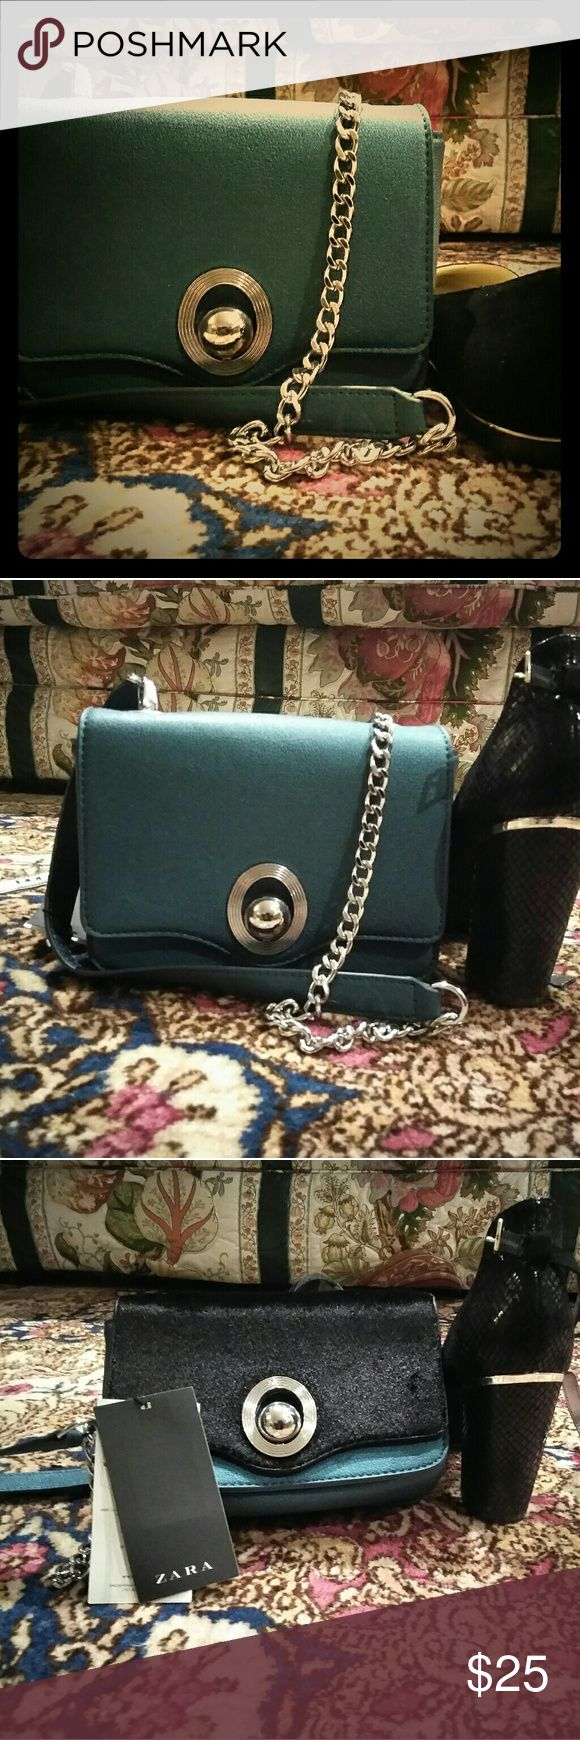 Convertible Zara handbag 2 for the price of 1. Convertible part unzips. Other part is black mohair! Stylish and chic. #affordablechic Bags Shoulder Bags